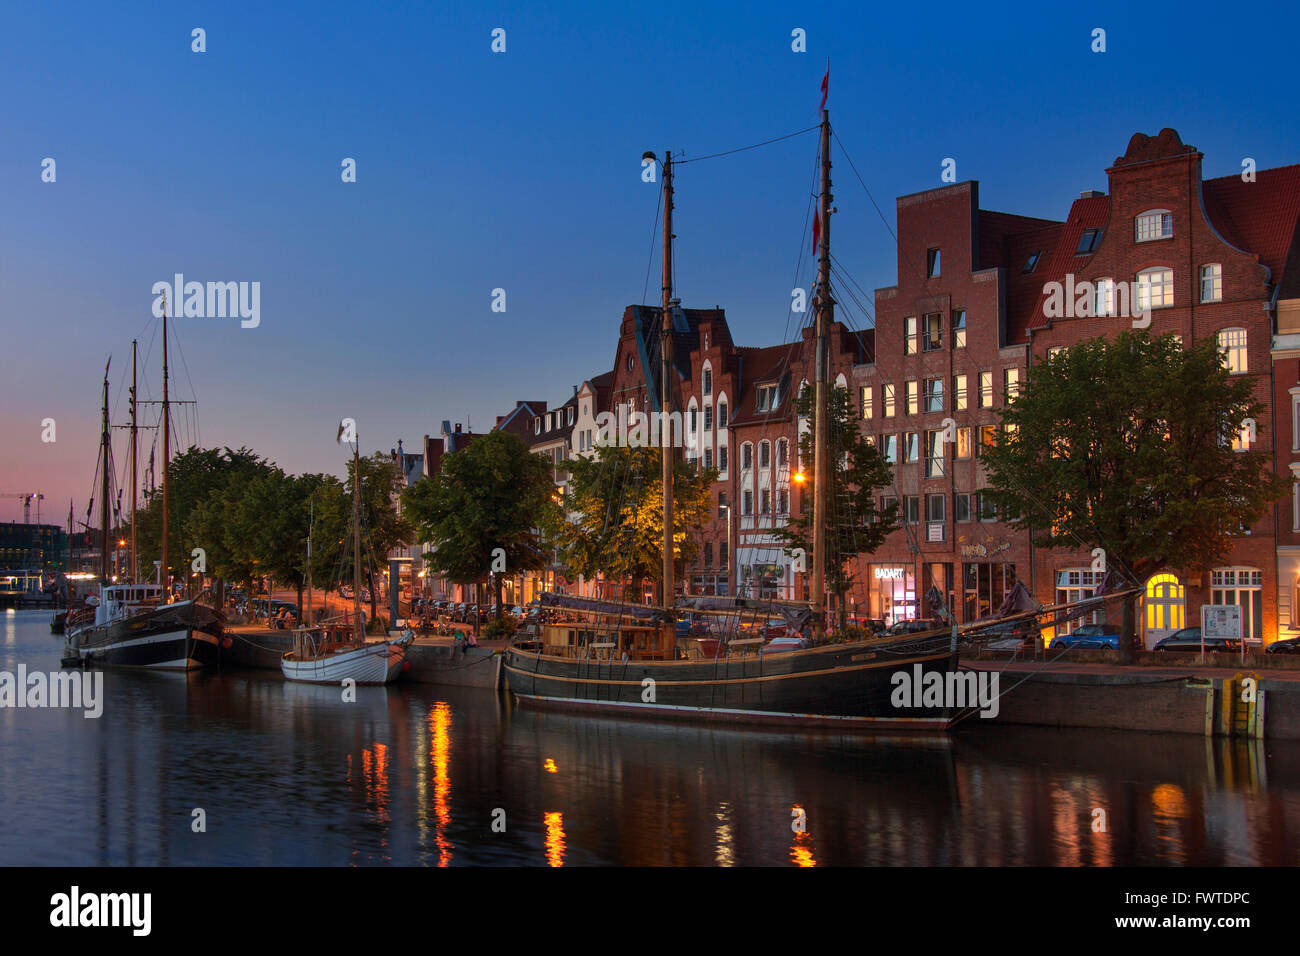 Museums harbour at night with traditional sailing ships berthed at the Untertrave in the Hanseatic town Lübeck, - Stock Image